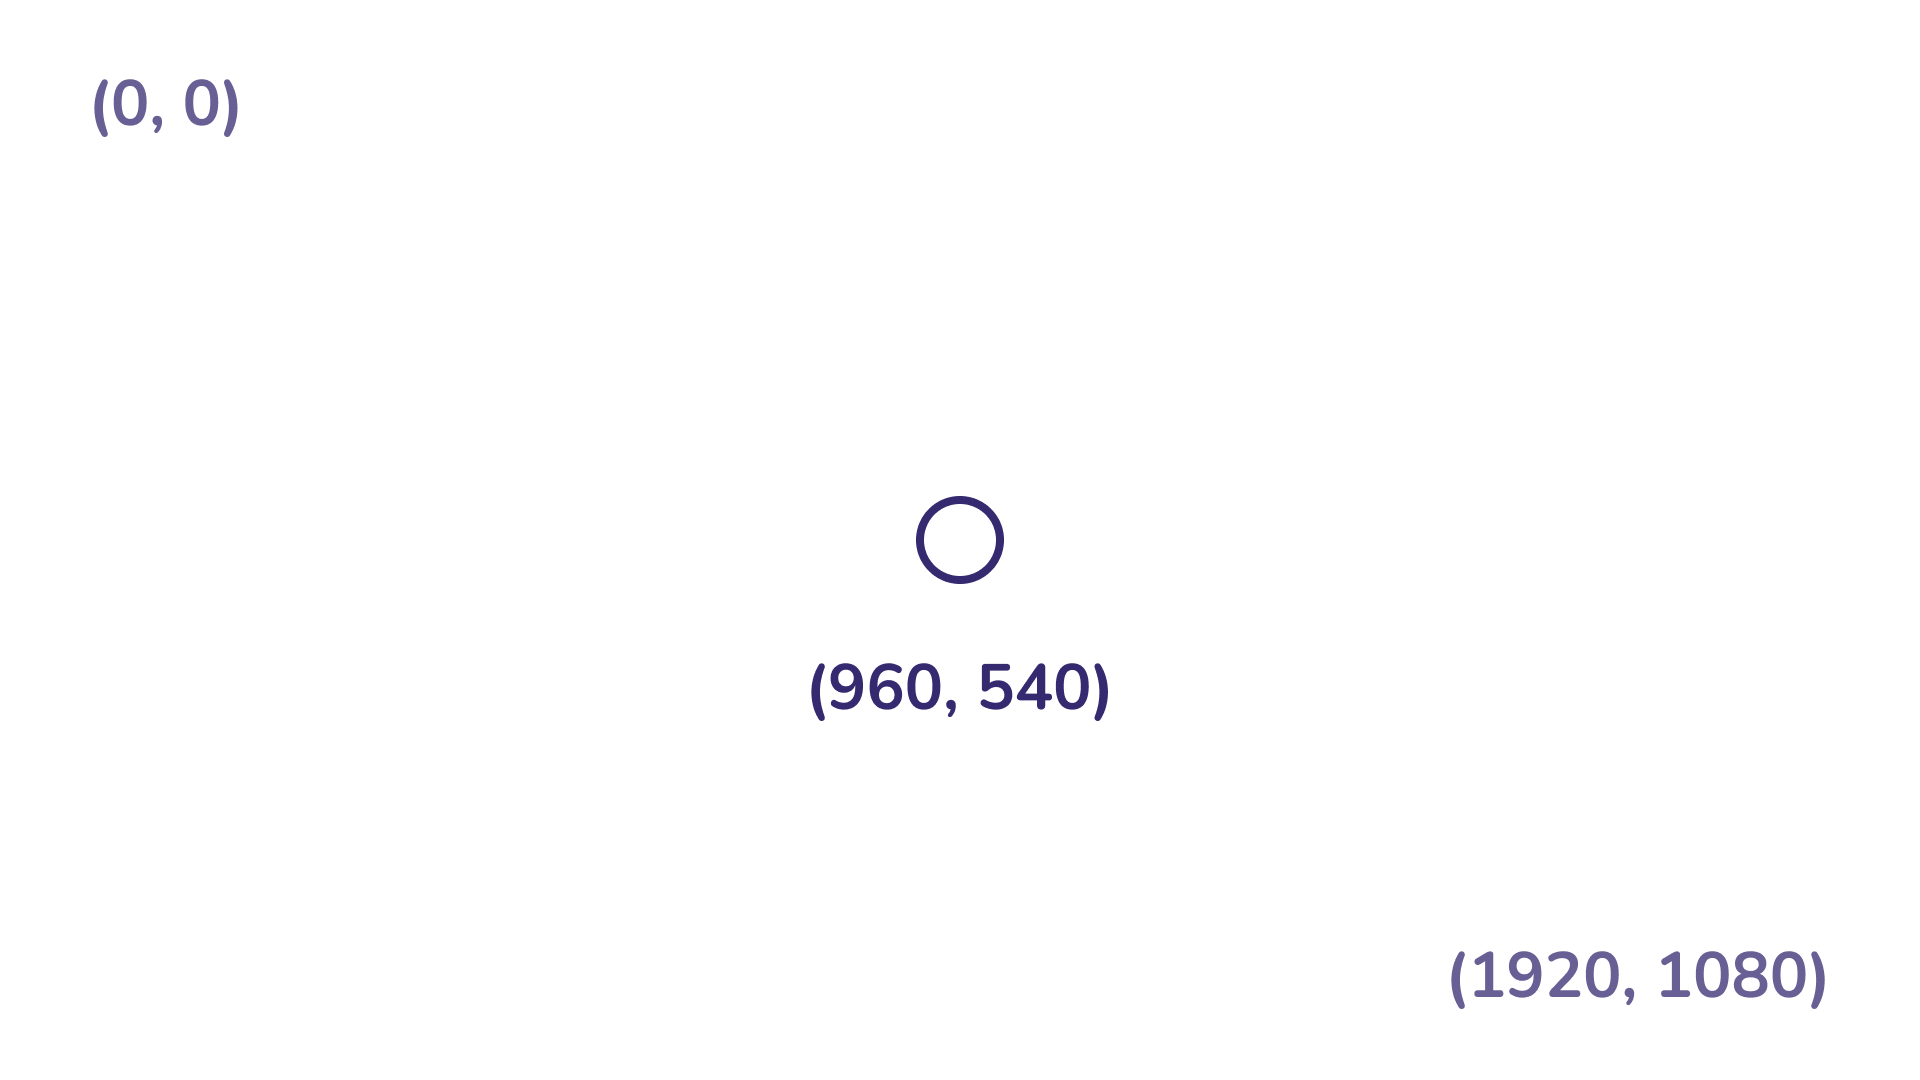 Points 0,0 in the top-left corner, 960, 40 in the center and 1920, 1040 in the bottom left written in purple. in an otherwise blank white space.